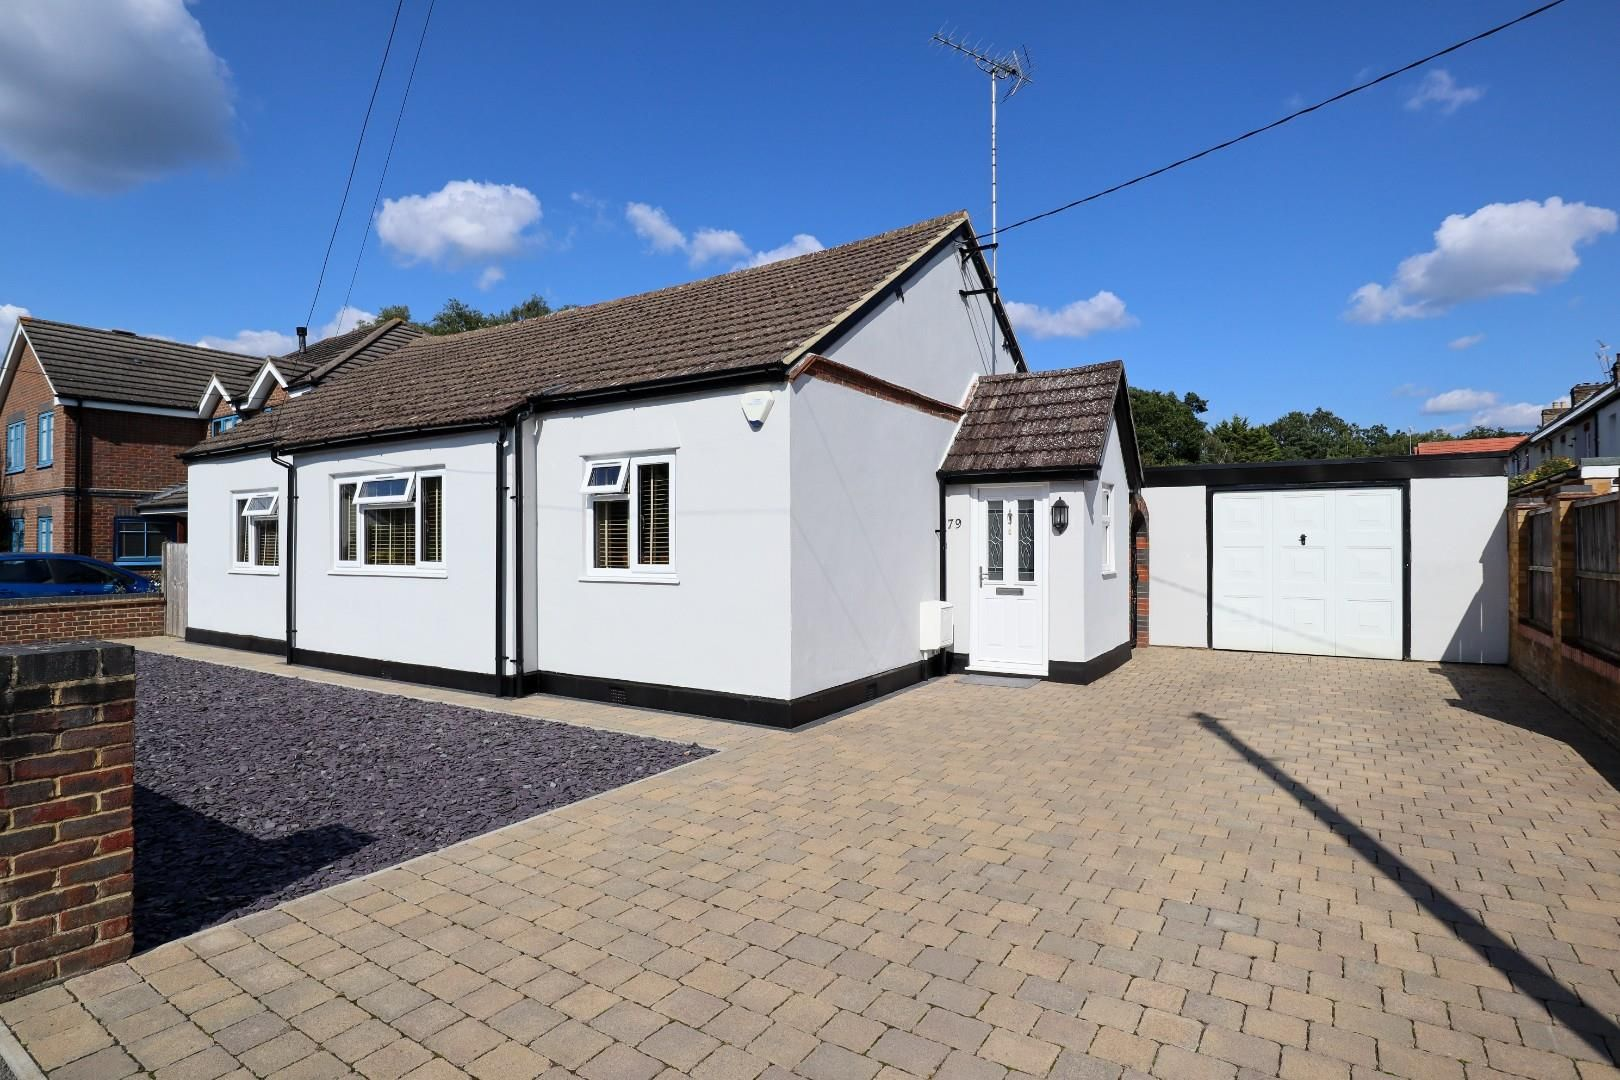 3 bed detached bungalow for sale in Mytchett  - Property Image 1